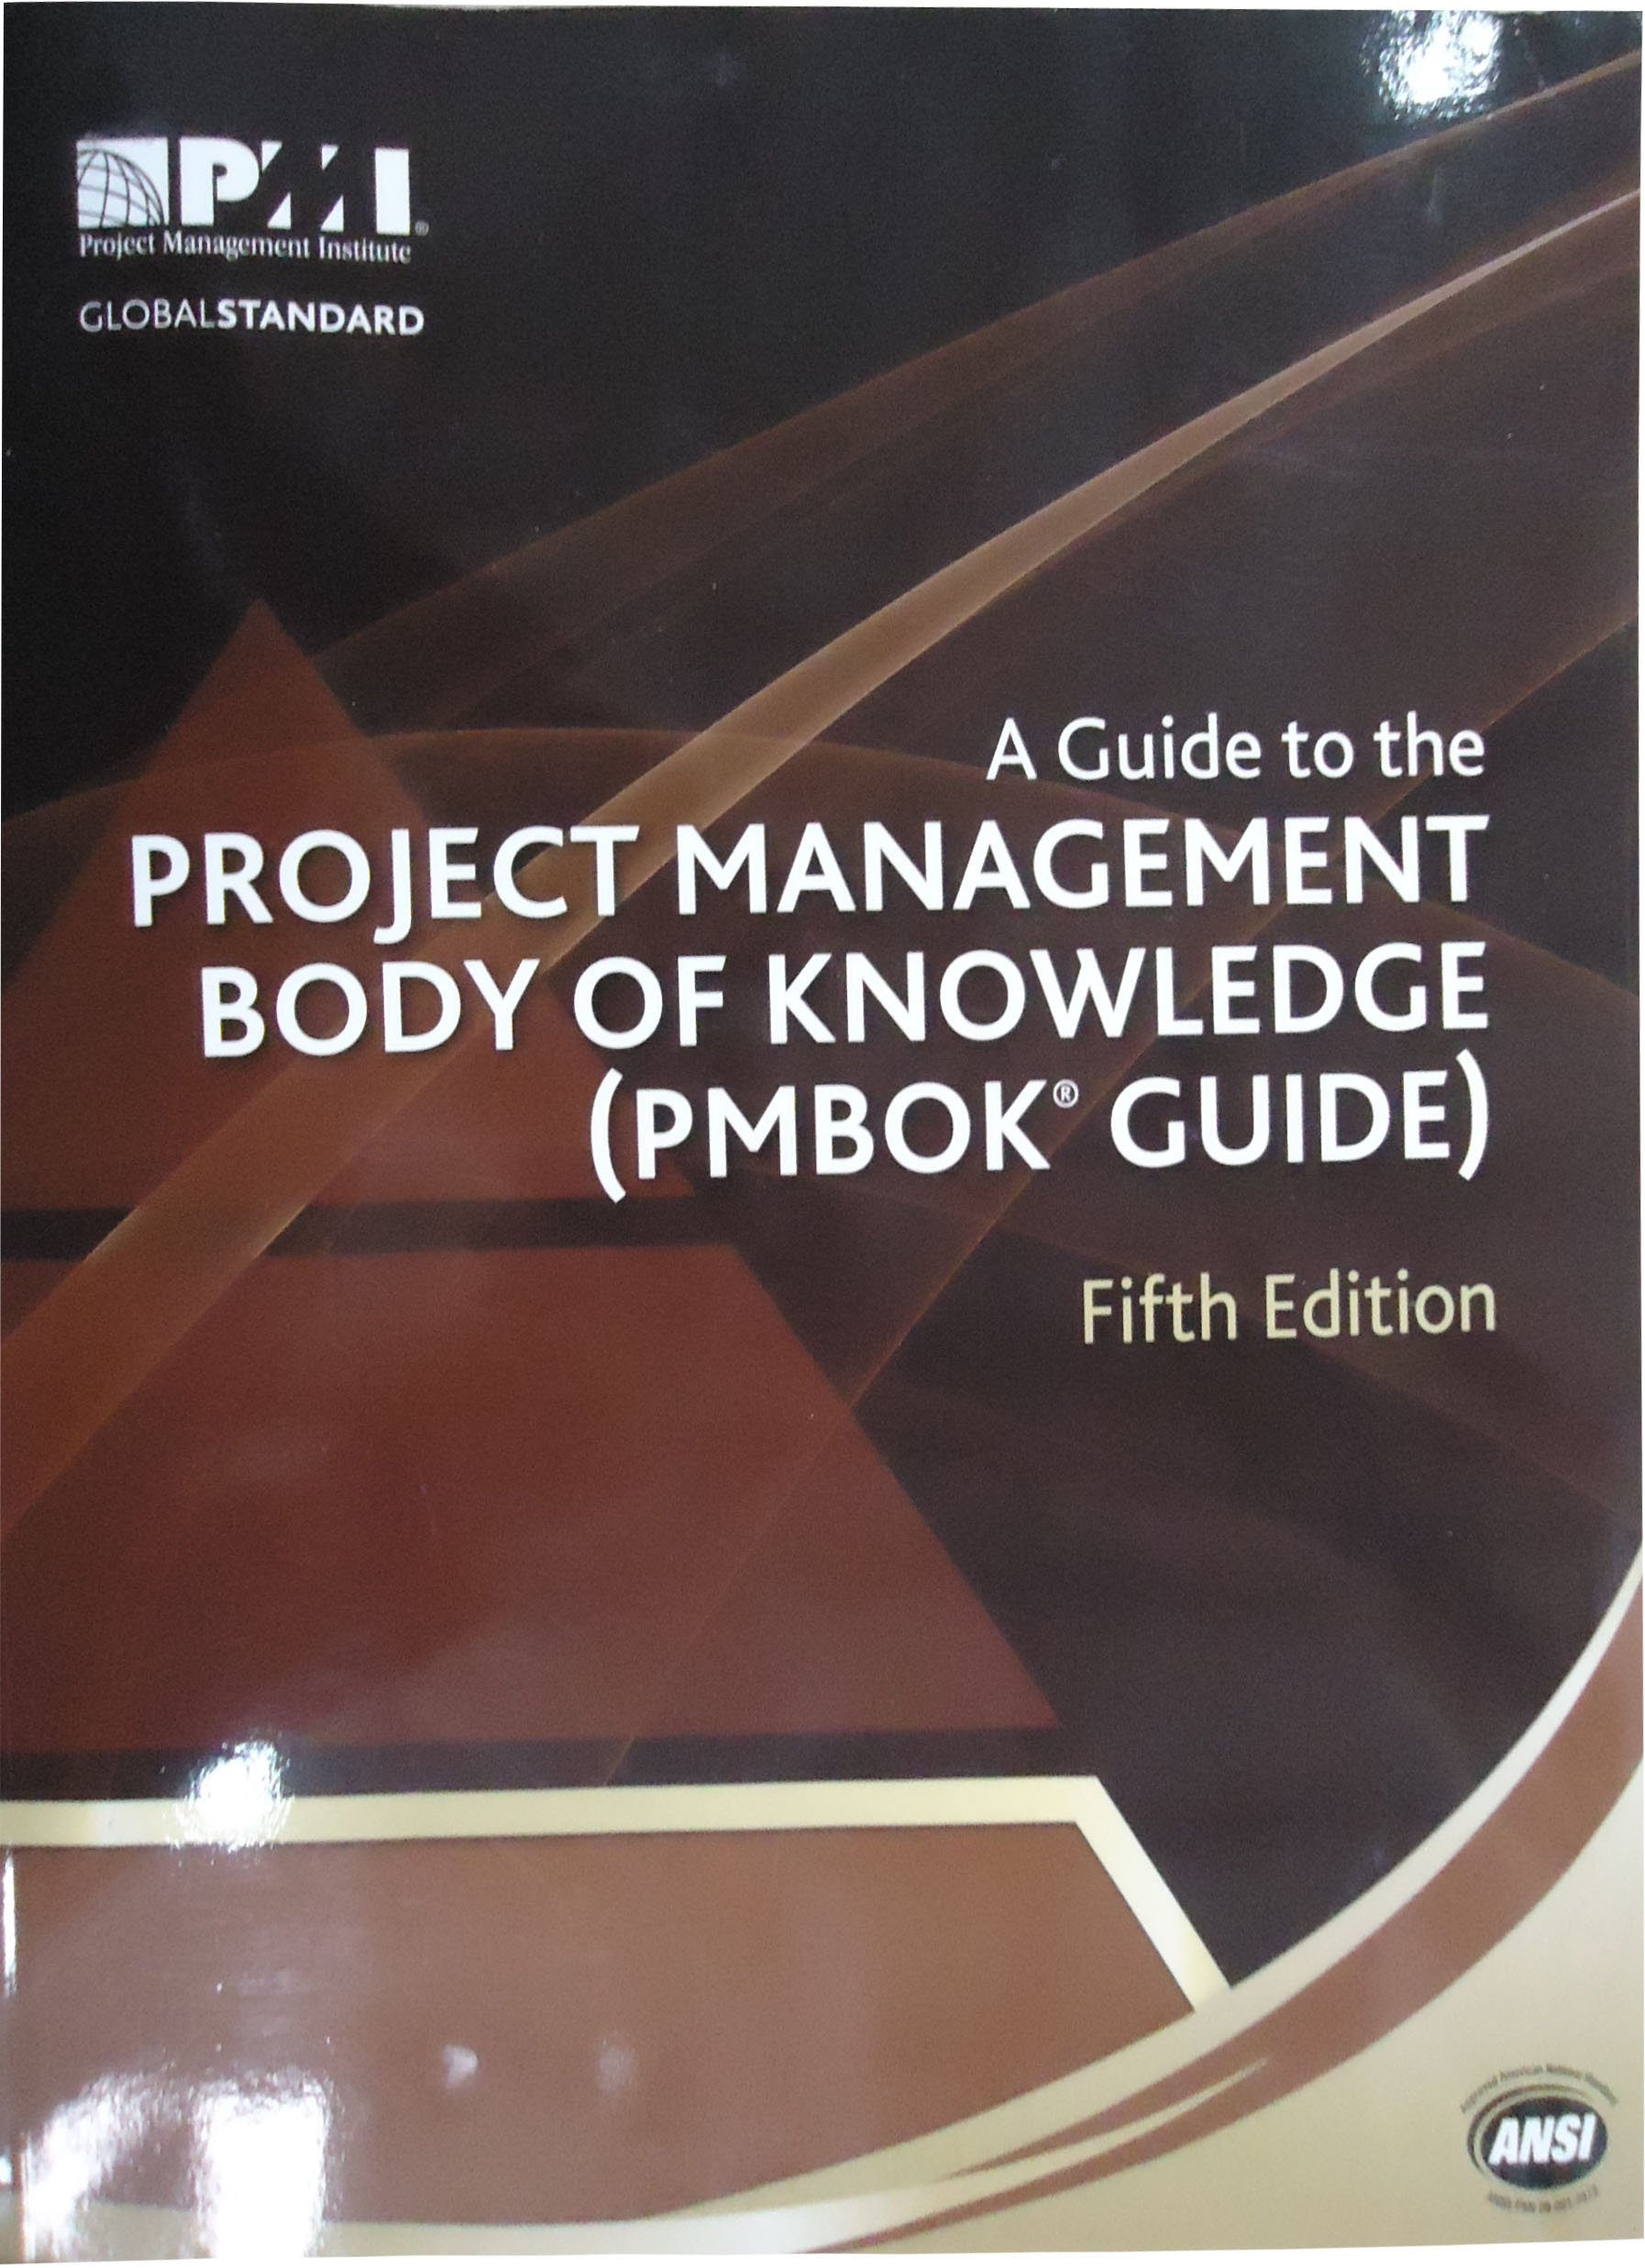 Buy A guide to the Project Management Body of Knowledge